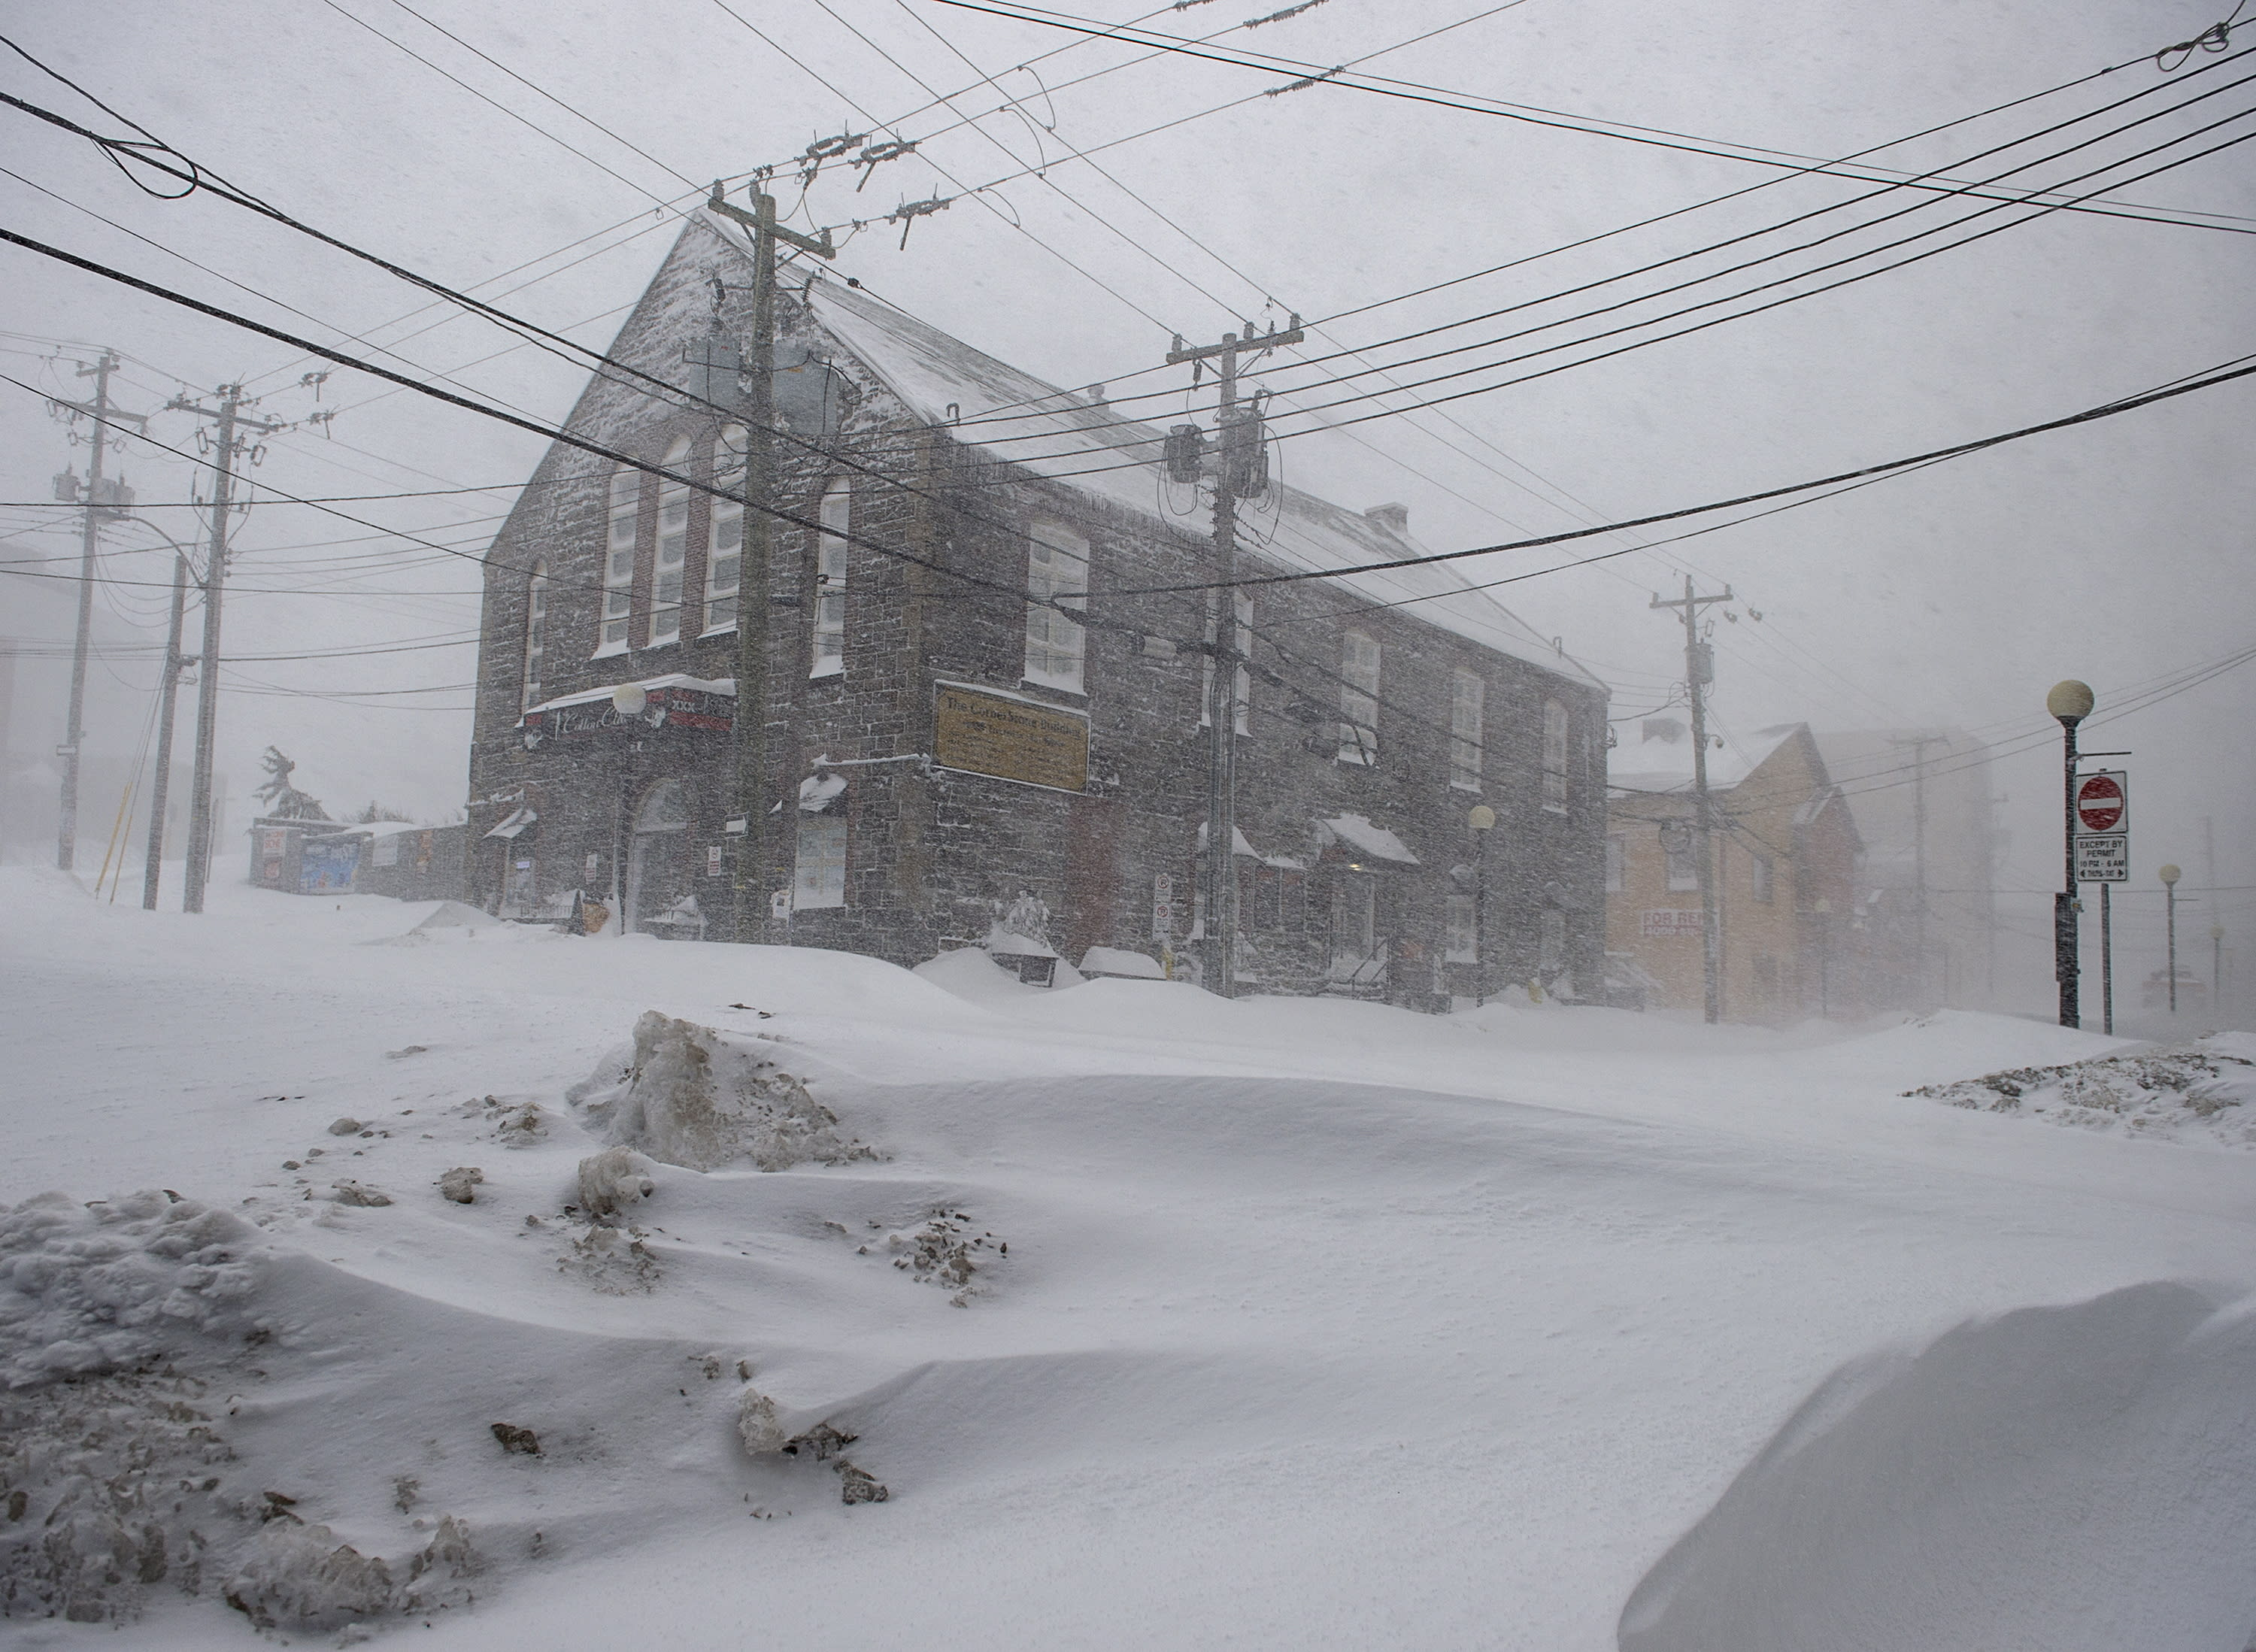 The streets were quiet St. John' Newfoundland on Friday, Jan. 17, 2020, as a major winter storm brought the city to a standstill. The city has declared a state of emergency, ordering businesses closed and vehicles off the roads as blizzard conditions descend on the Newfoundland and Labrador capital. (Andrew Vaughan/The Canadian Press via AP)